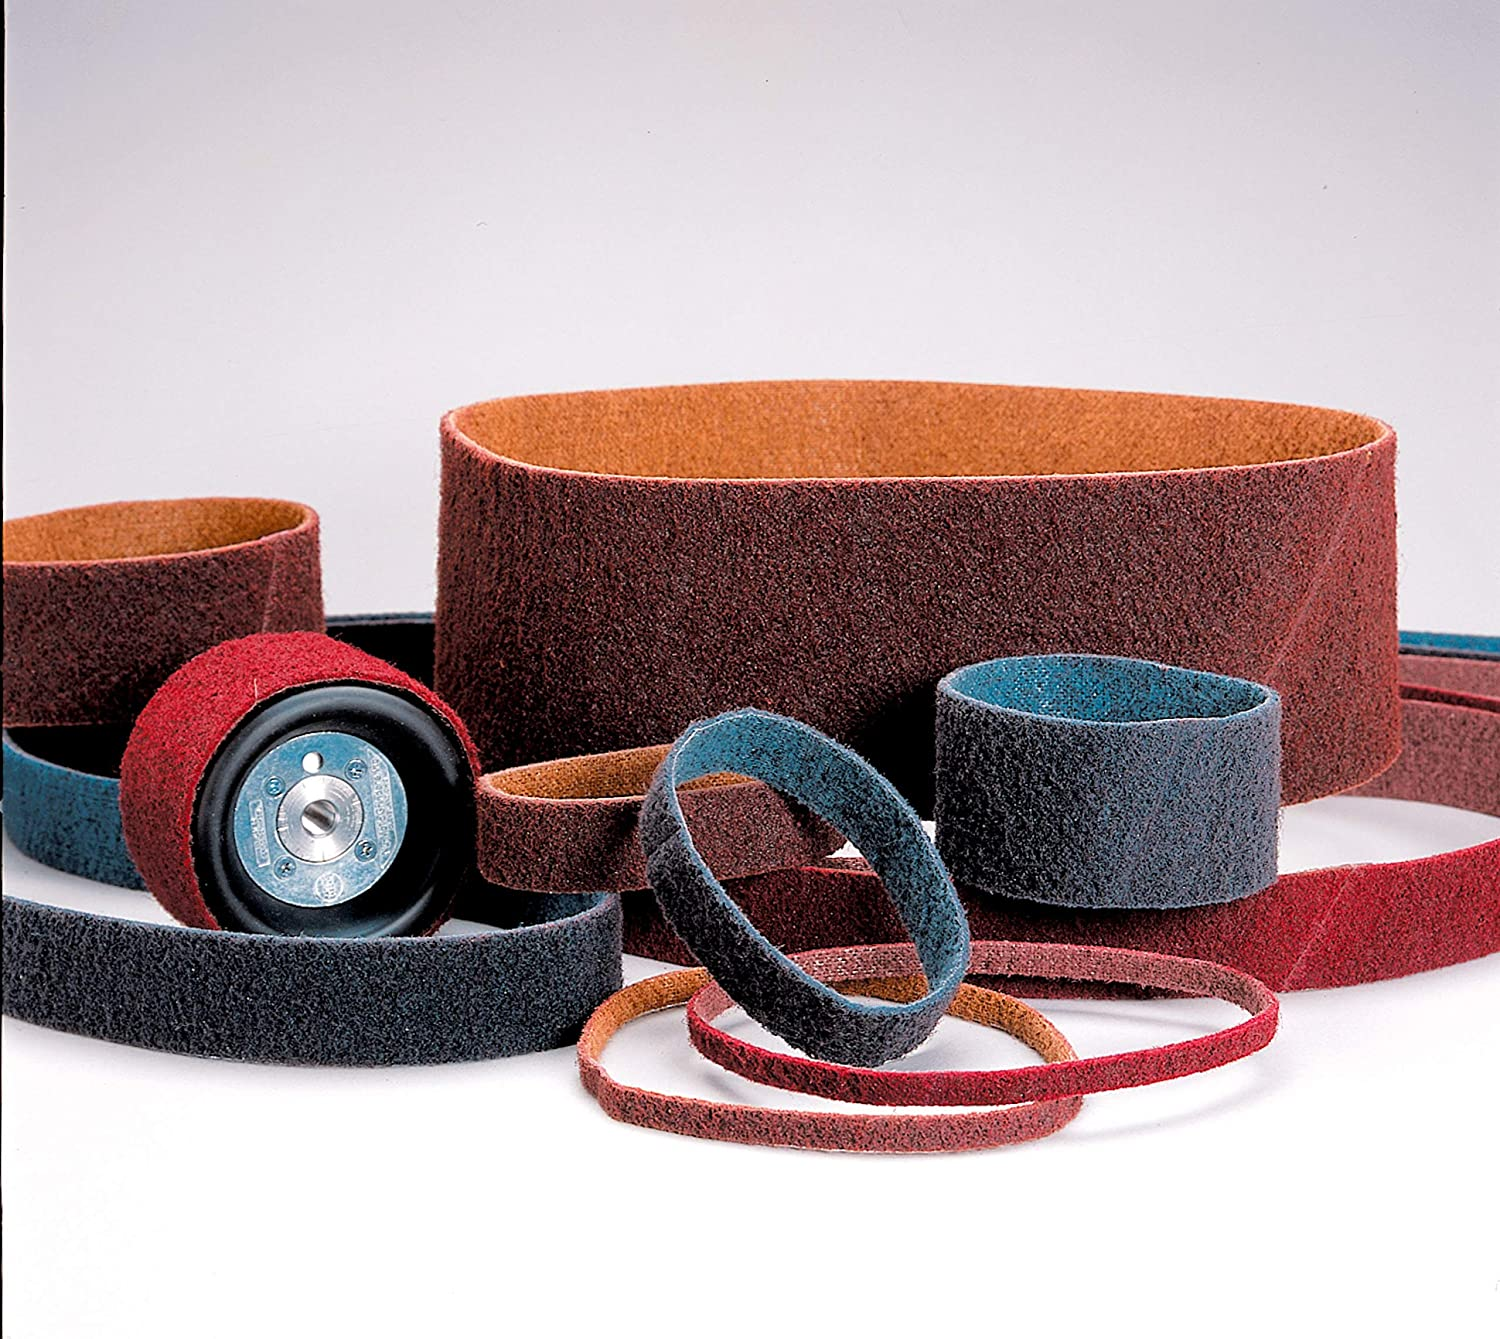 Standard Abrasives Surface Conditioning RC Belt 888213 5 per case 3M 4 in x 60 in VFN